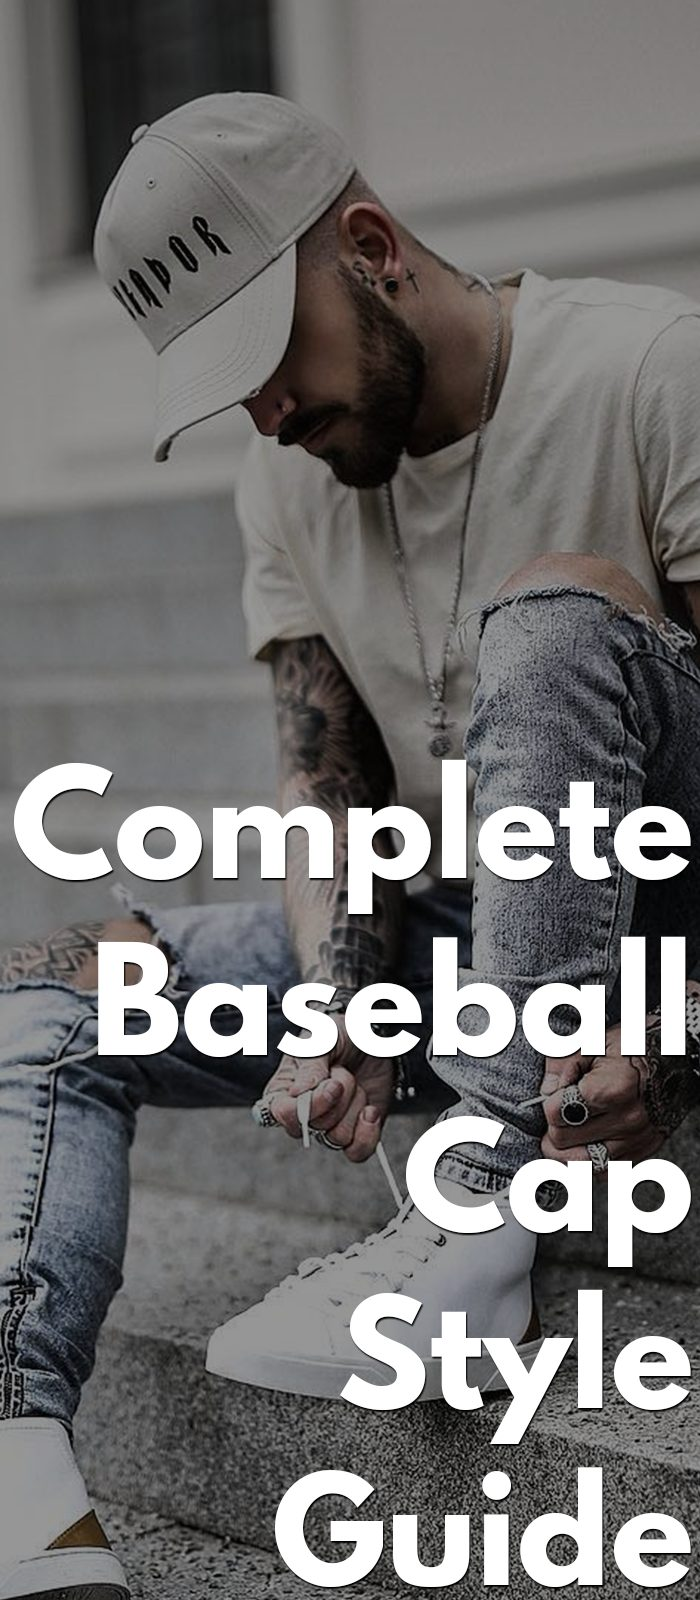 Complete Baseball Cap Style Guide